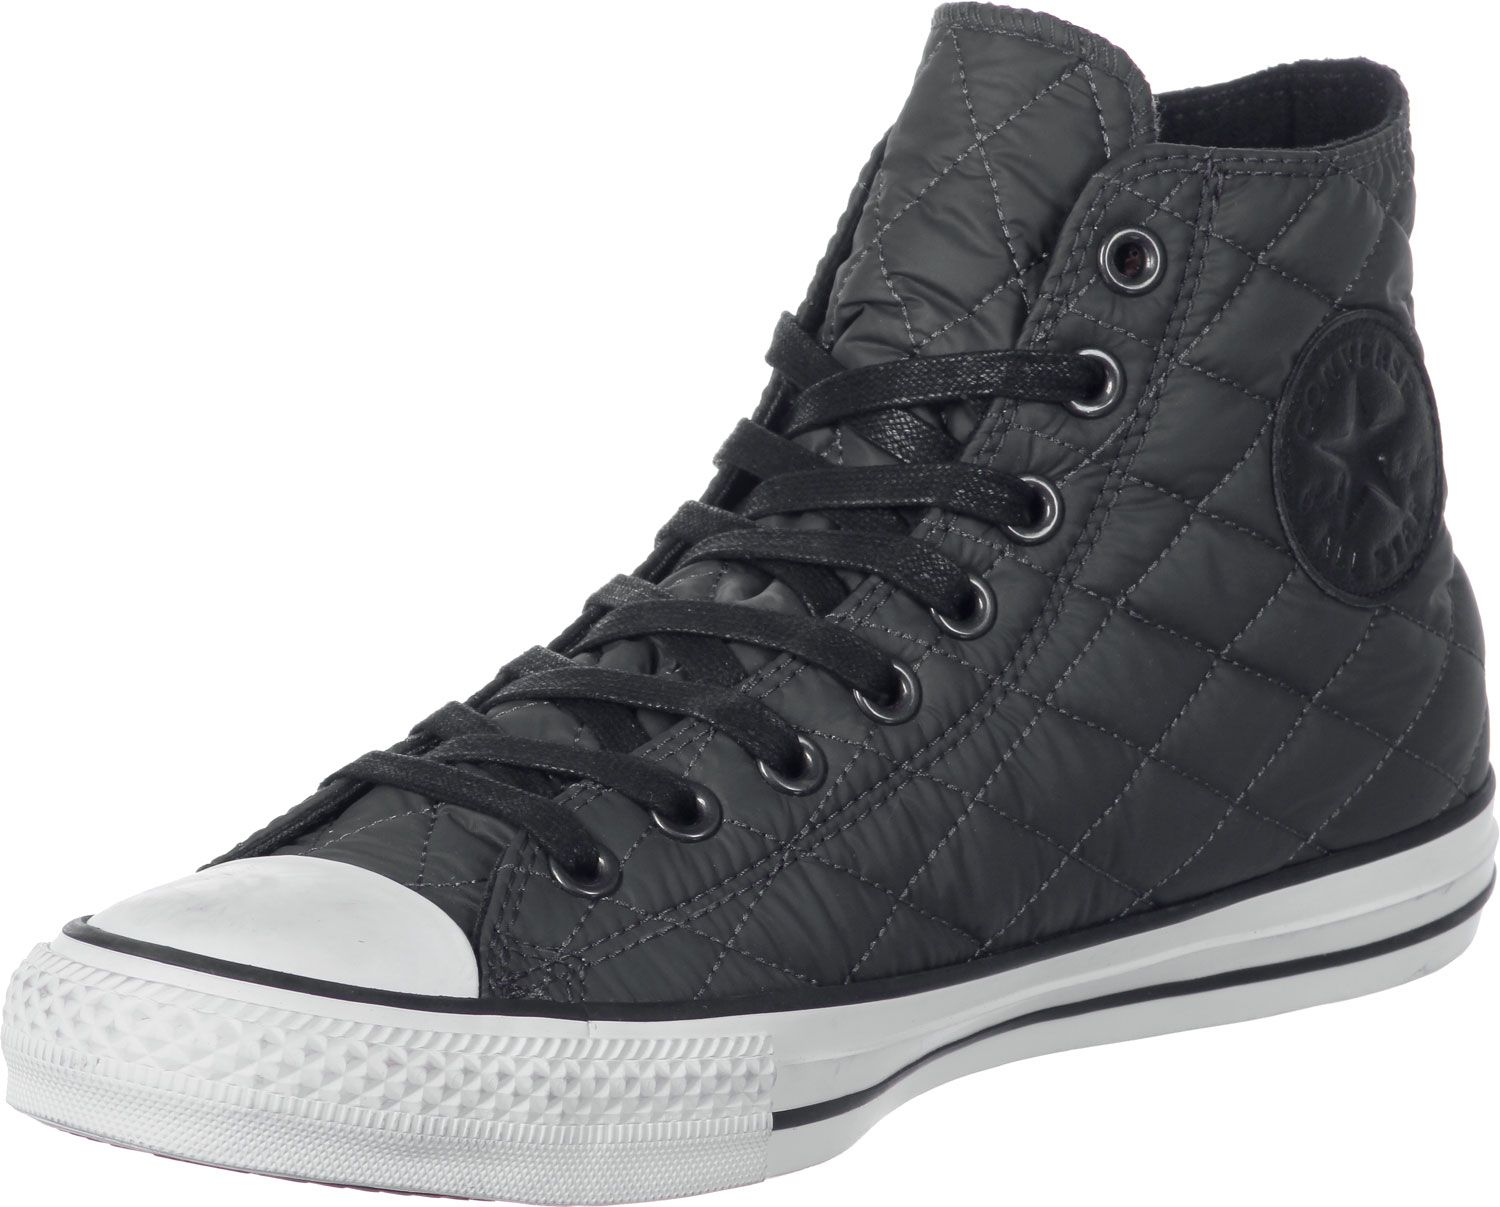 Converse All Star Quitted Nylon -Thunder Grey #Converse #QuittedShoes  #This_Color